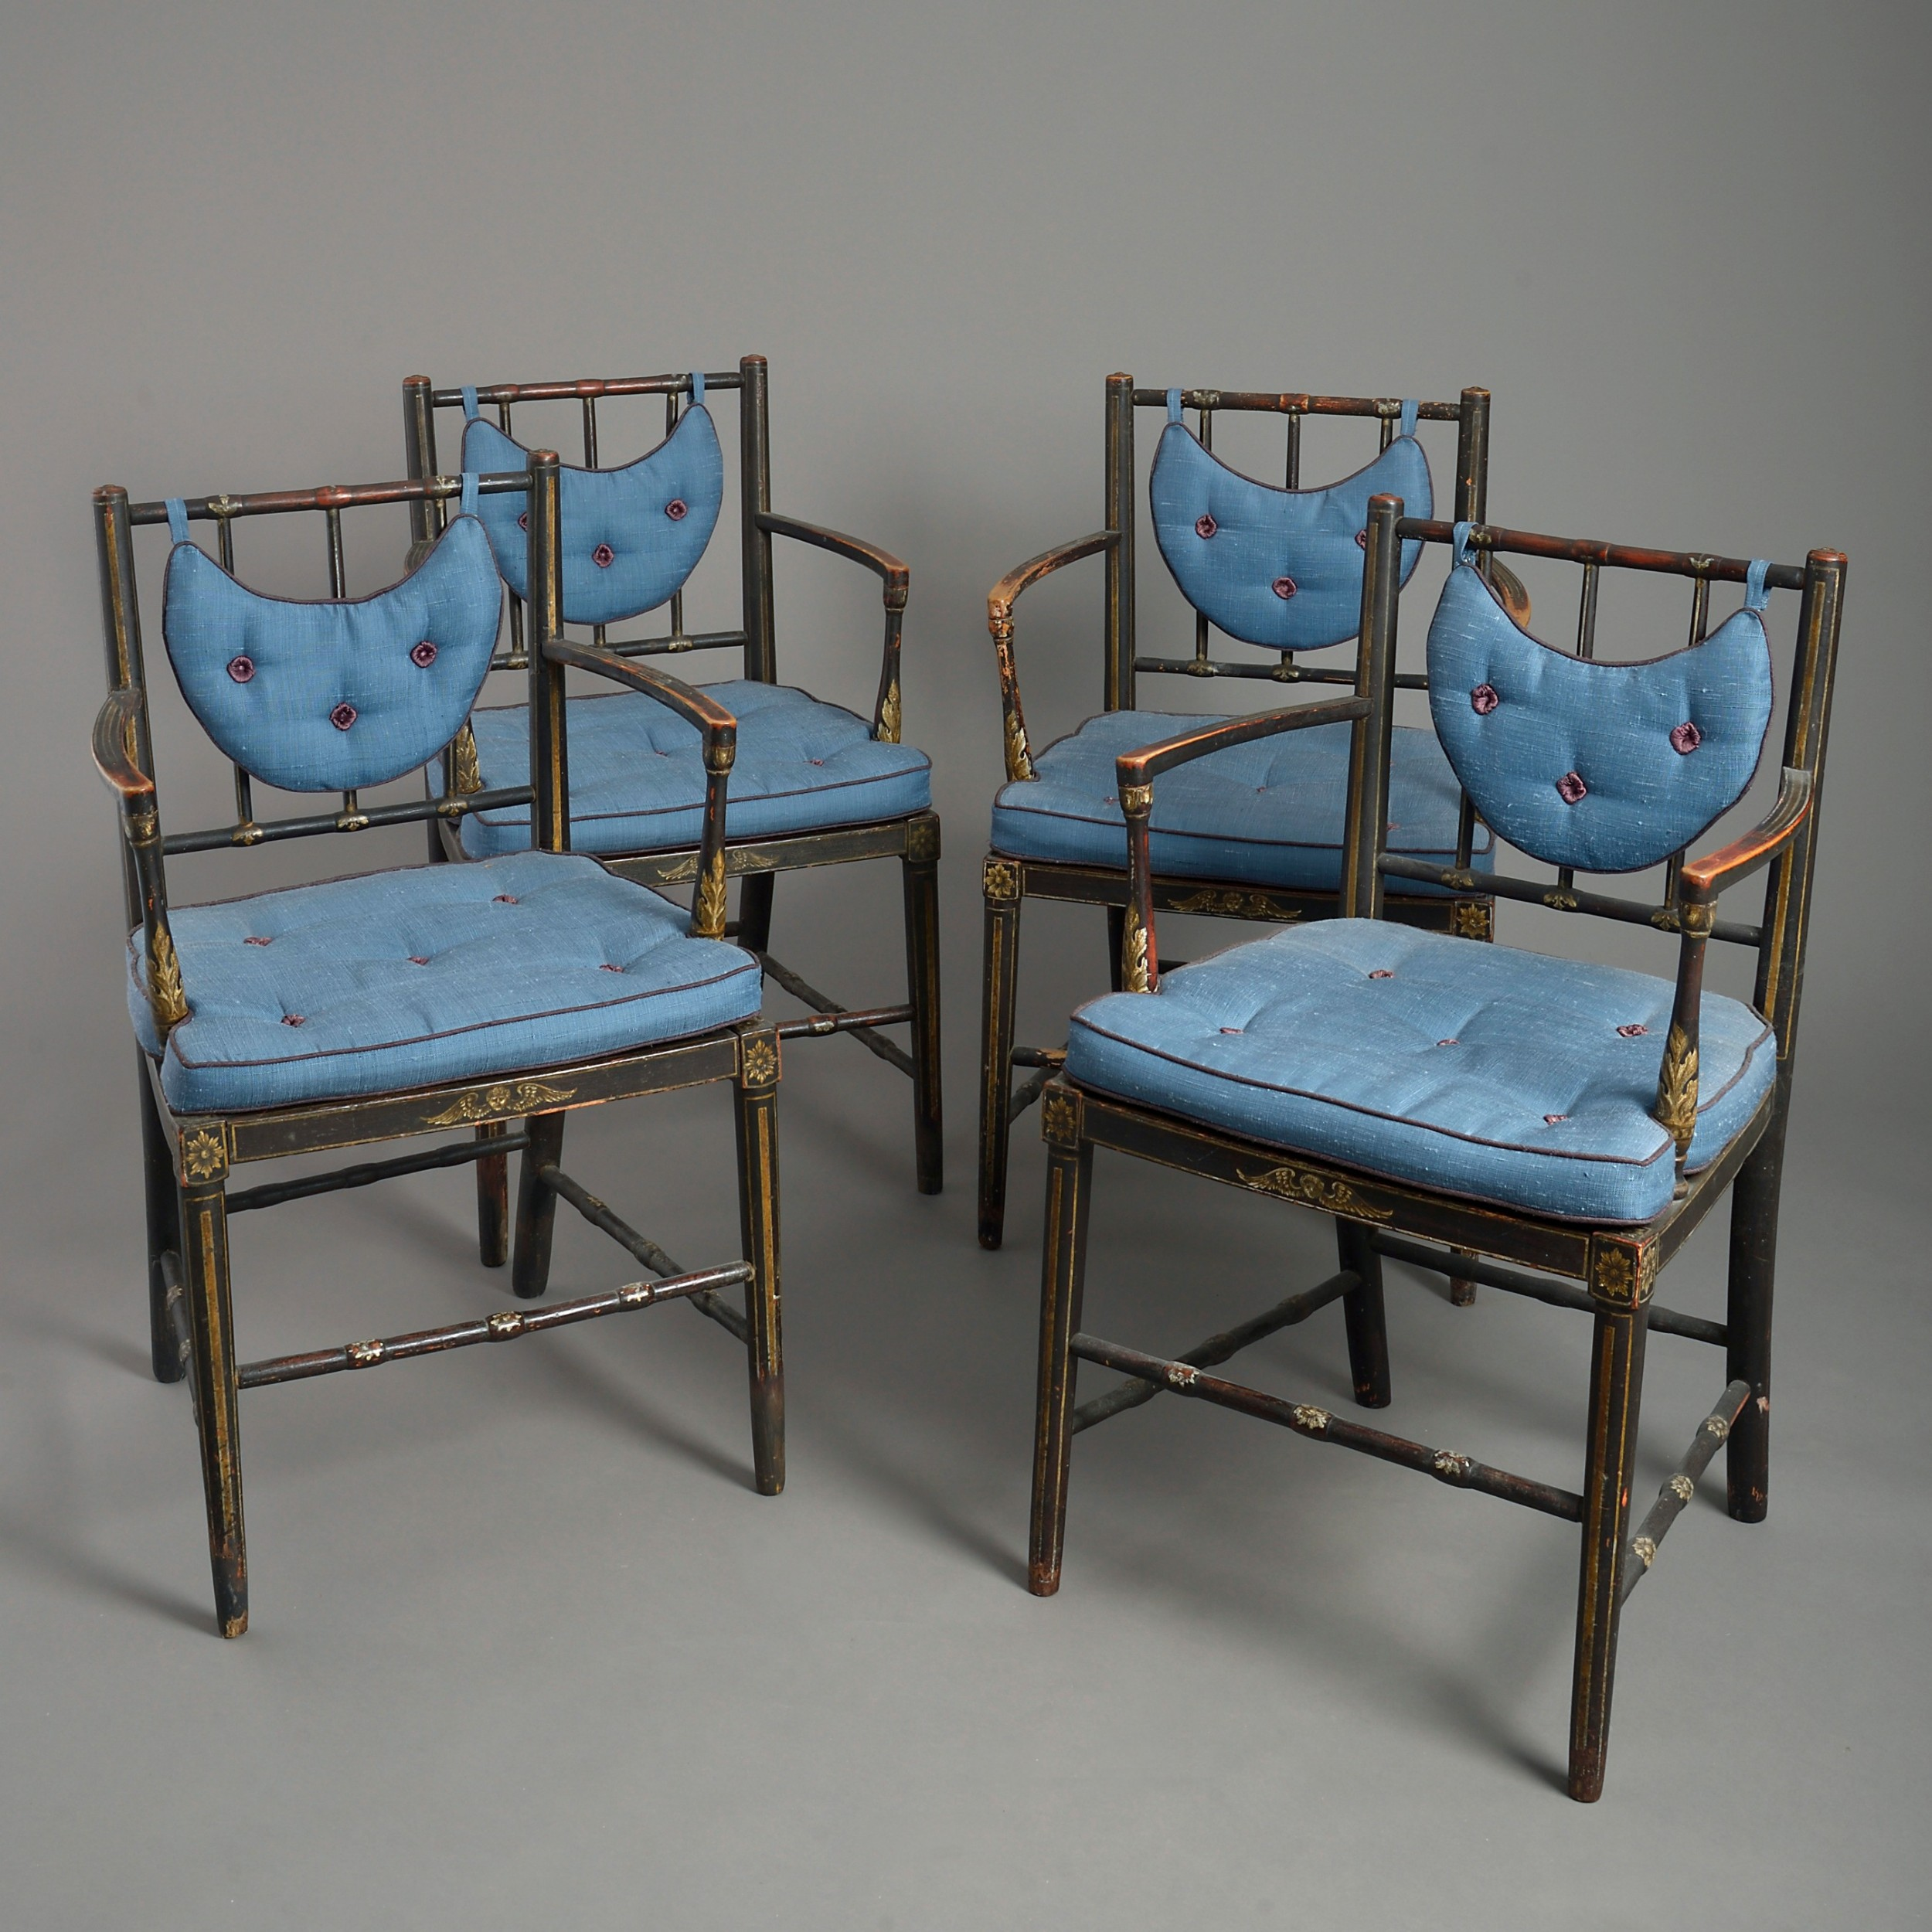 four early nineteenth century regency period armchairs